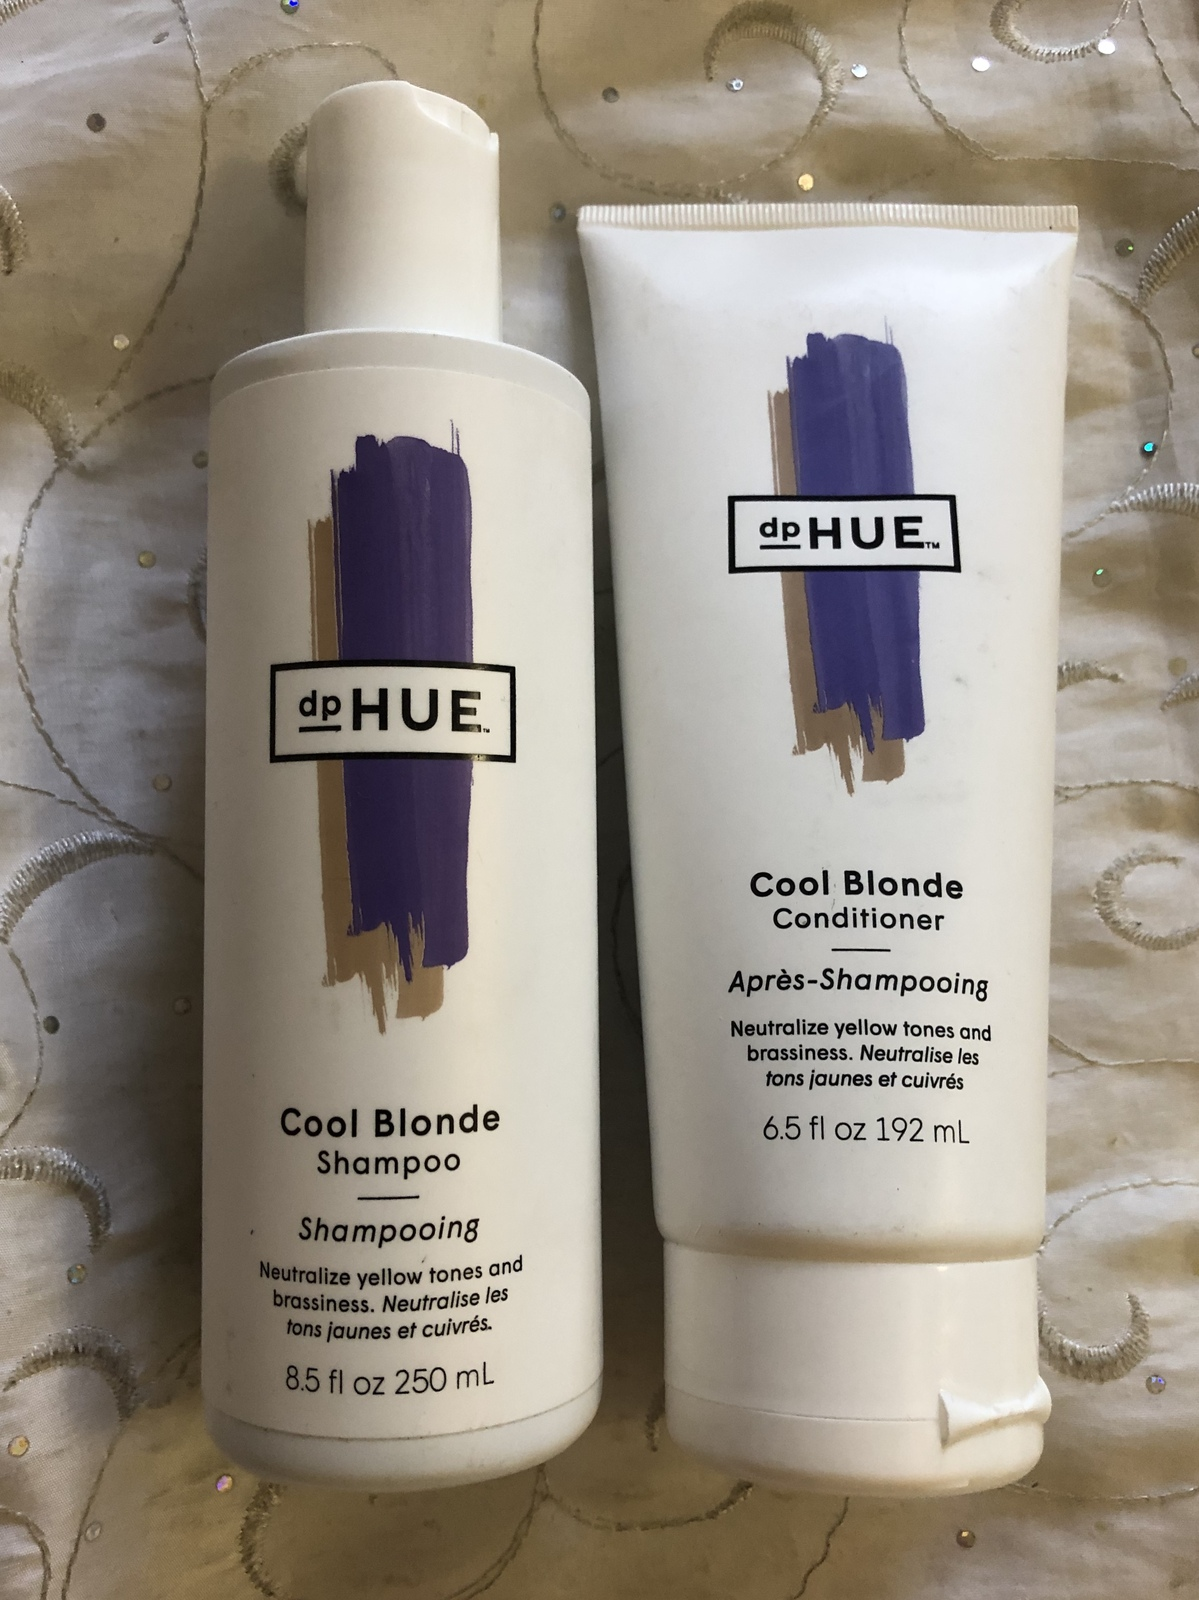 Primary image for dp HUE Cool Blonde Shampoo & Conditioner set